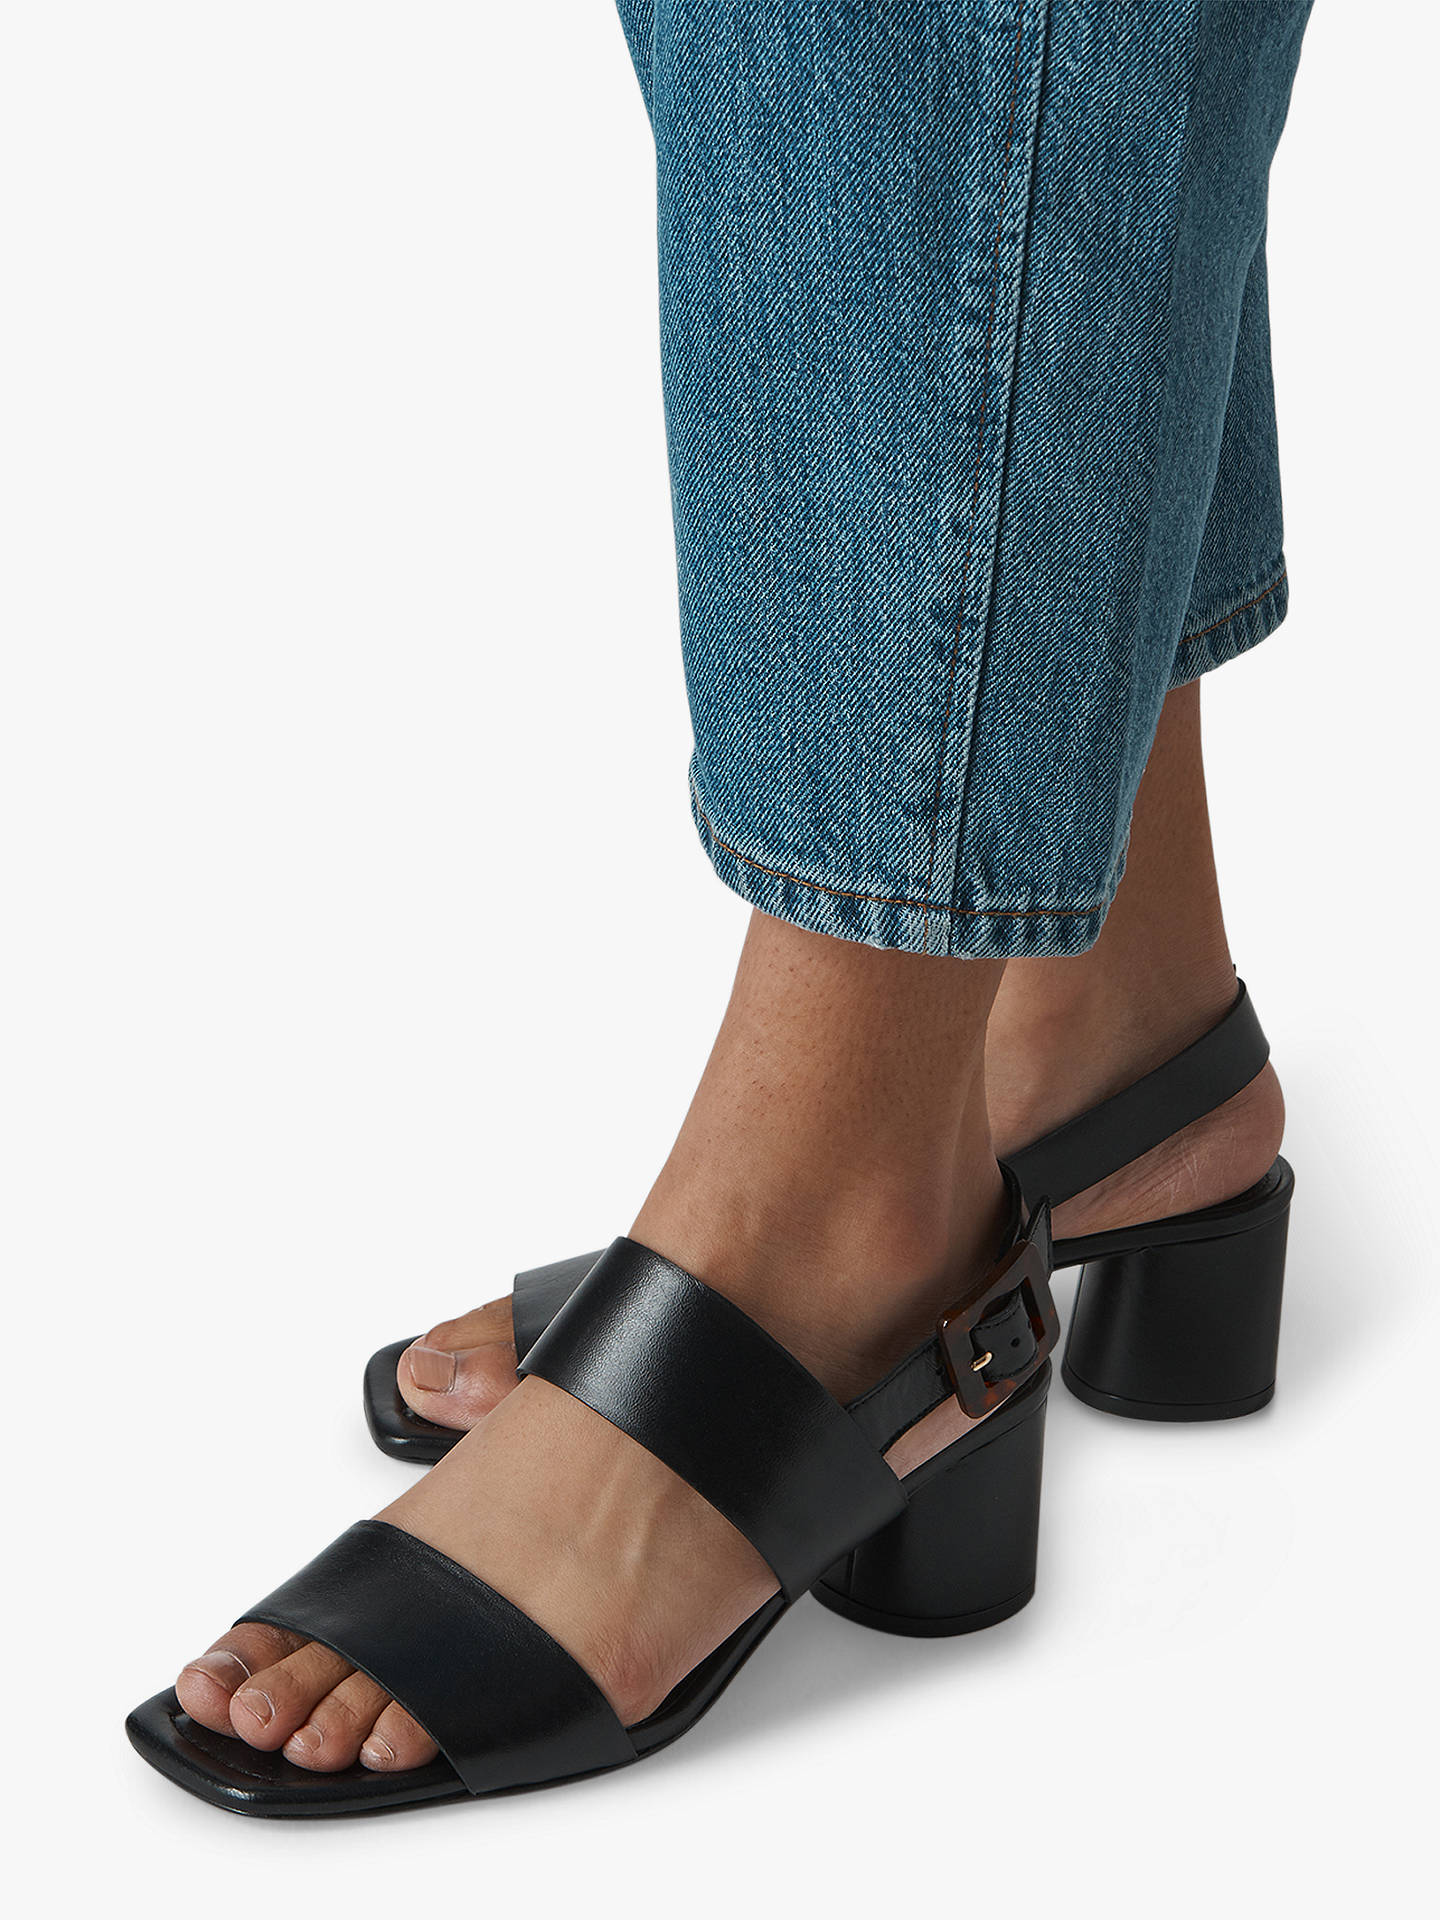 Buy Whistles Avery Tortoise Buckle Sandals, Black Suede, 4 Online at johnlewis.com